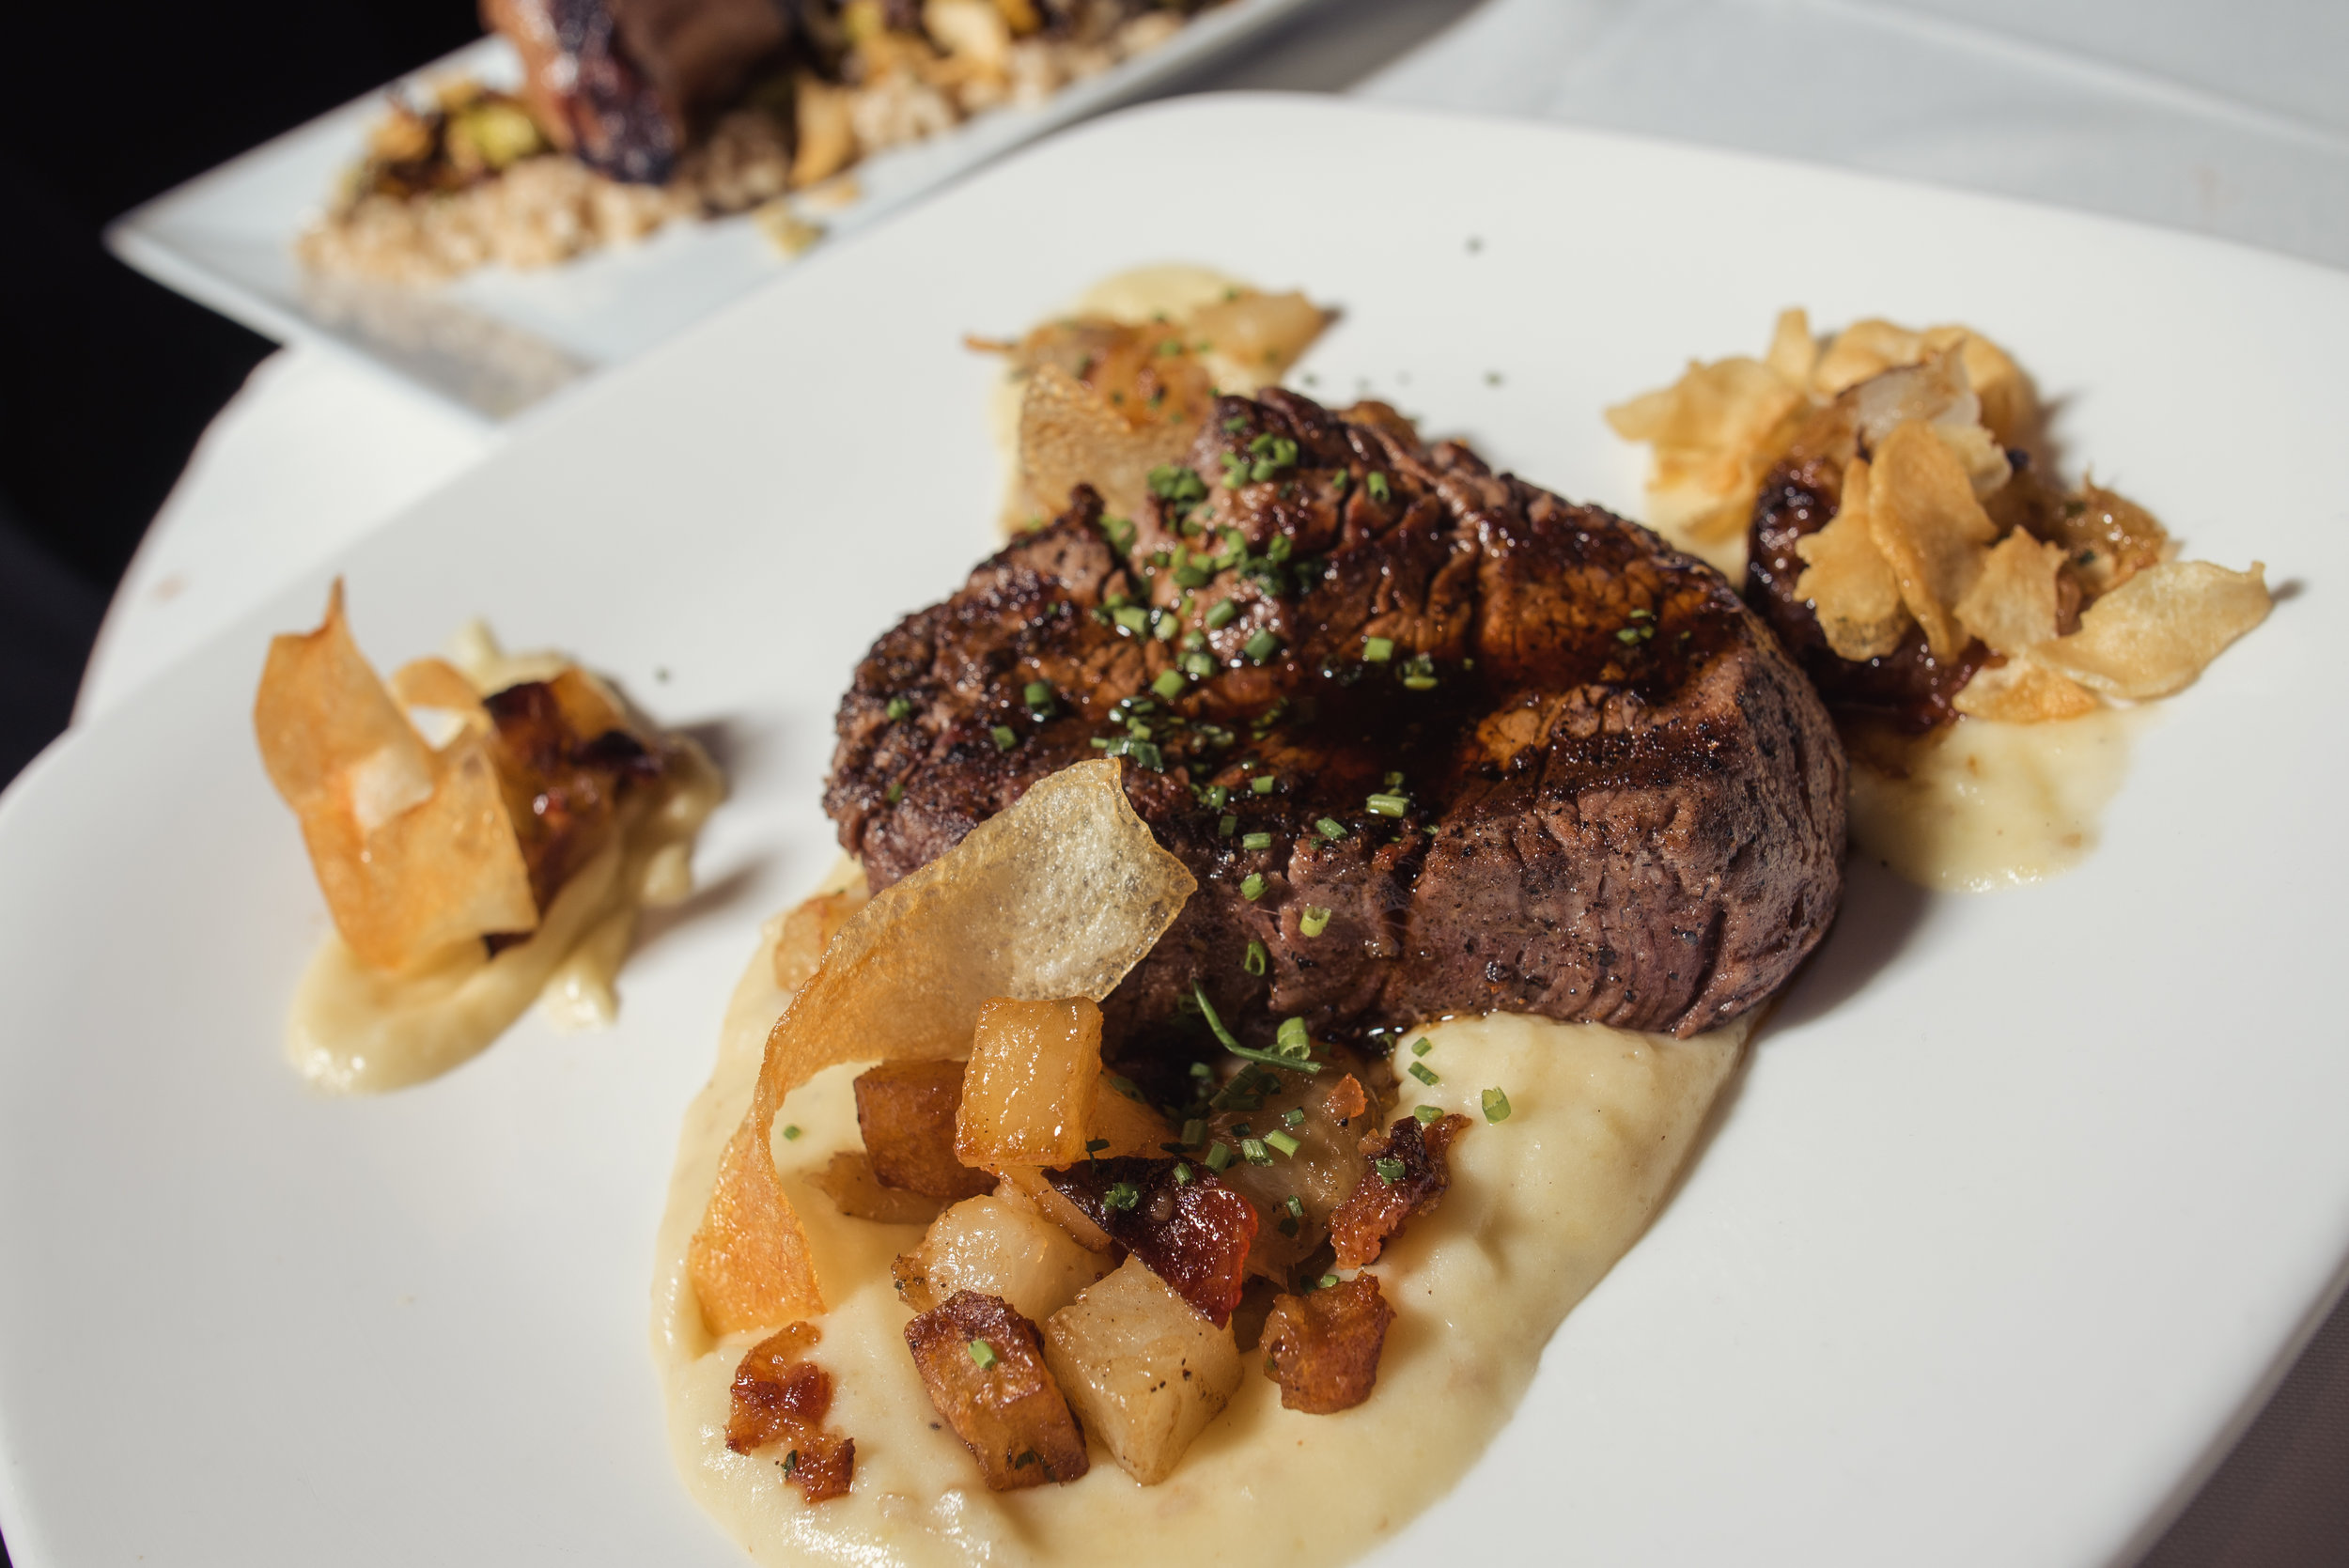 Melt-in-the-mouth filet, Aerie style: Truffle mash, confit dice potato, candied bacon, roasted cipollini onion, jus